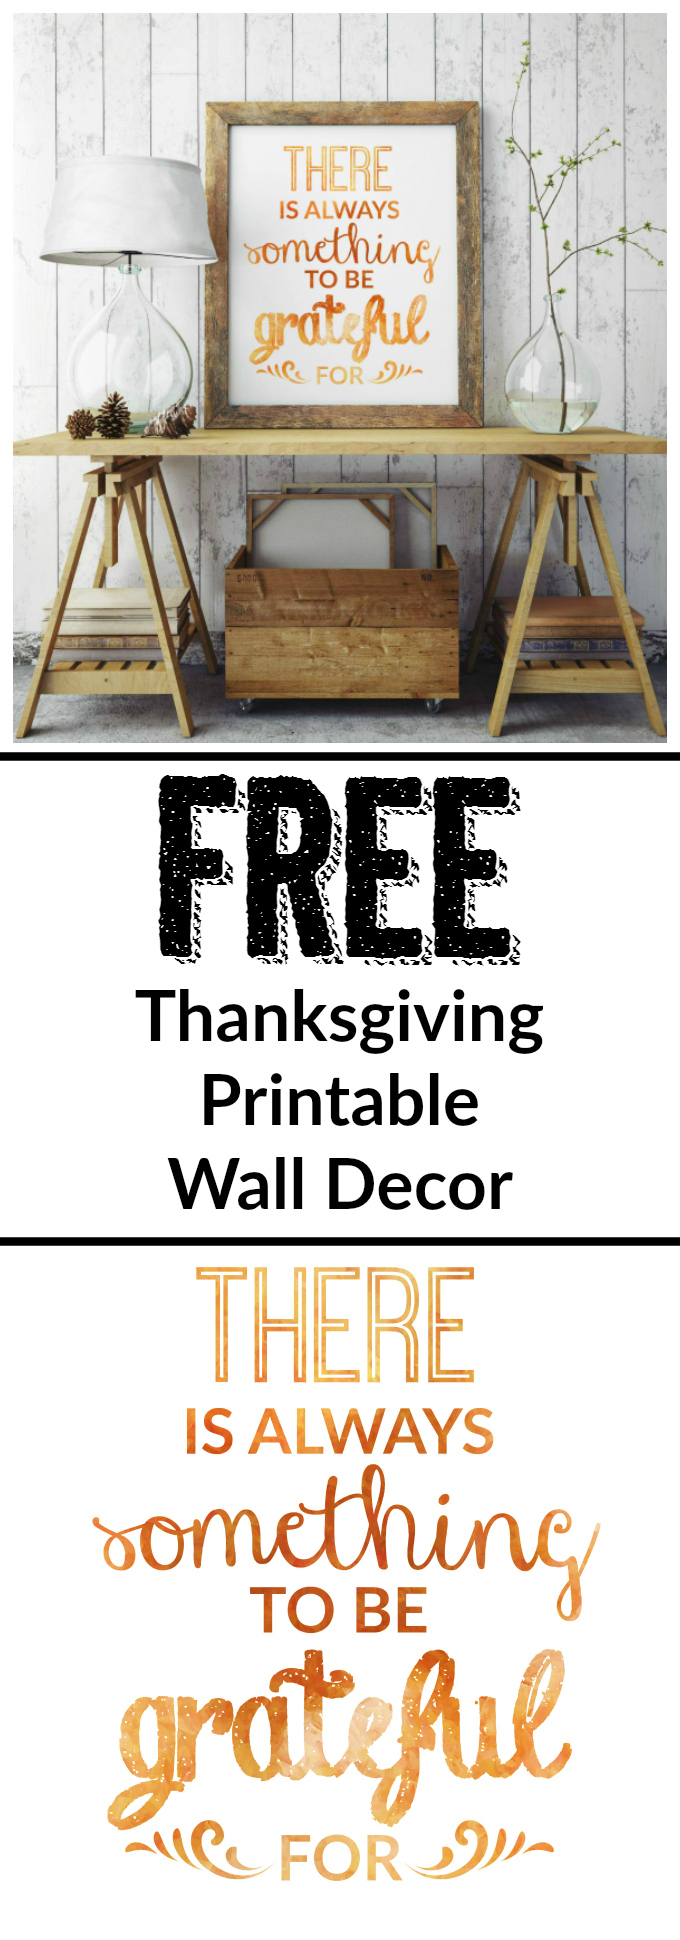 Printable Wall Decor Pinterest : Thanksgiving decor free printable inspirational wall art